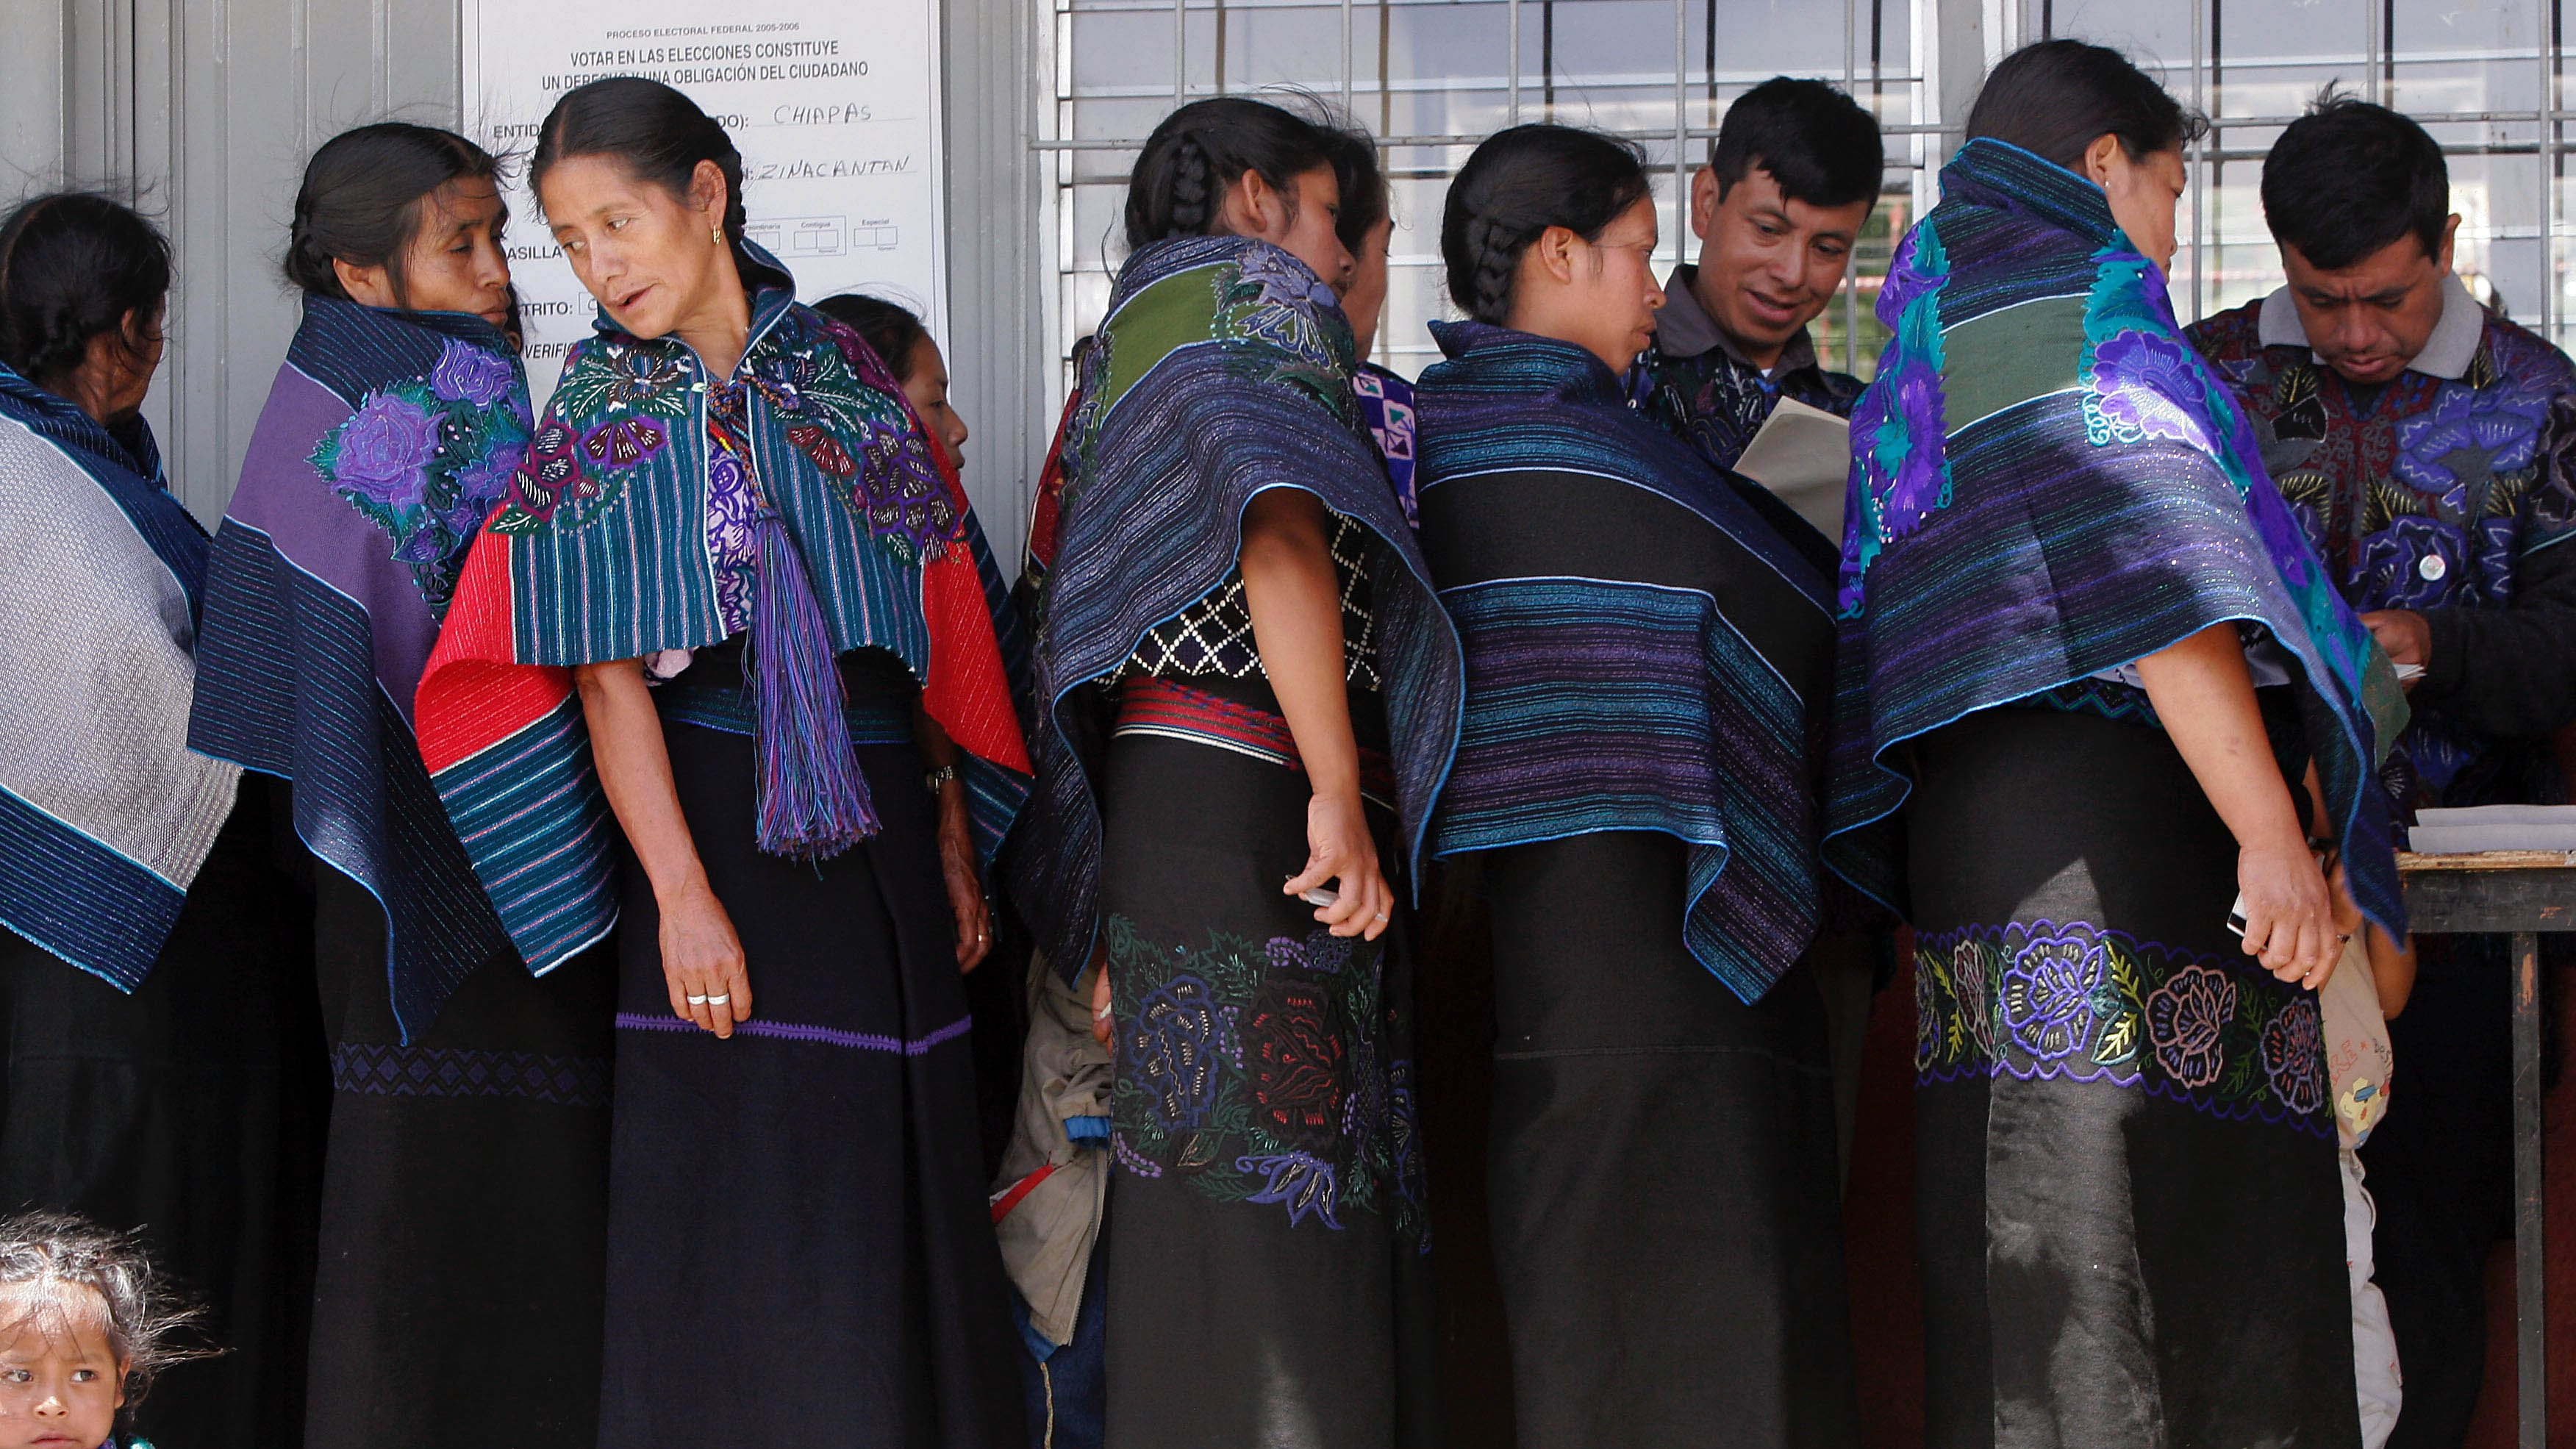 Tzotzil indigenous women  line up to vote  during presidential elections in the southern state of Chiapas, Mexico.